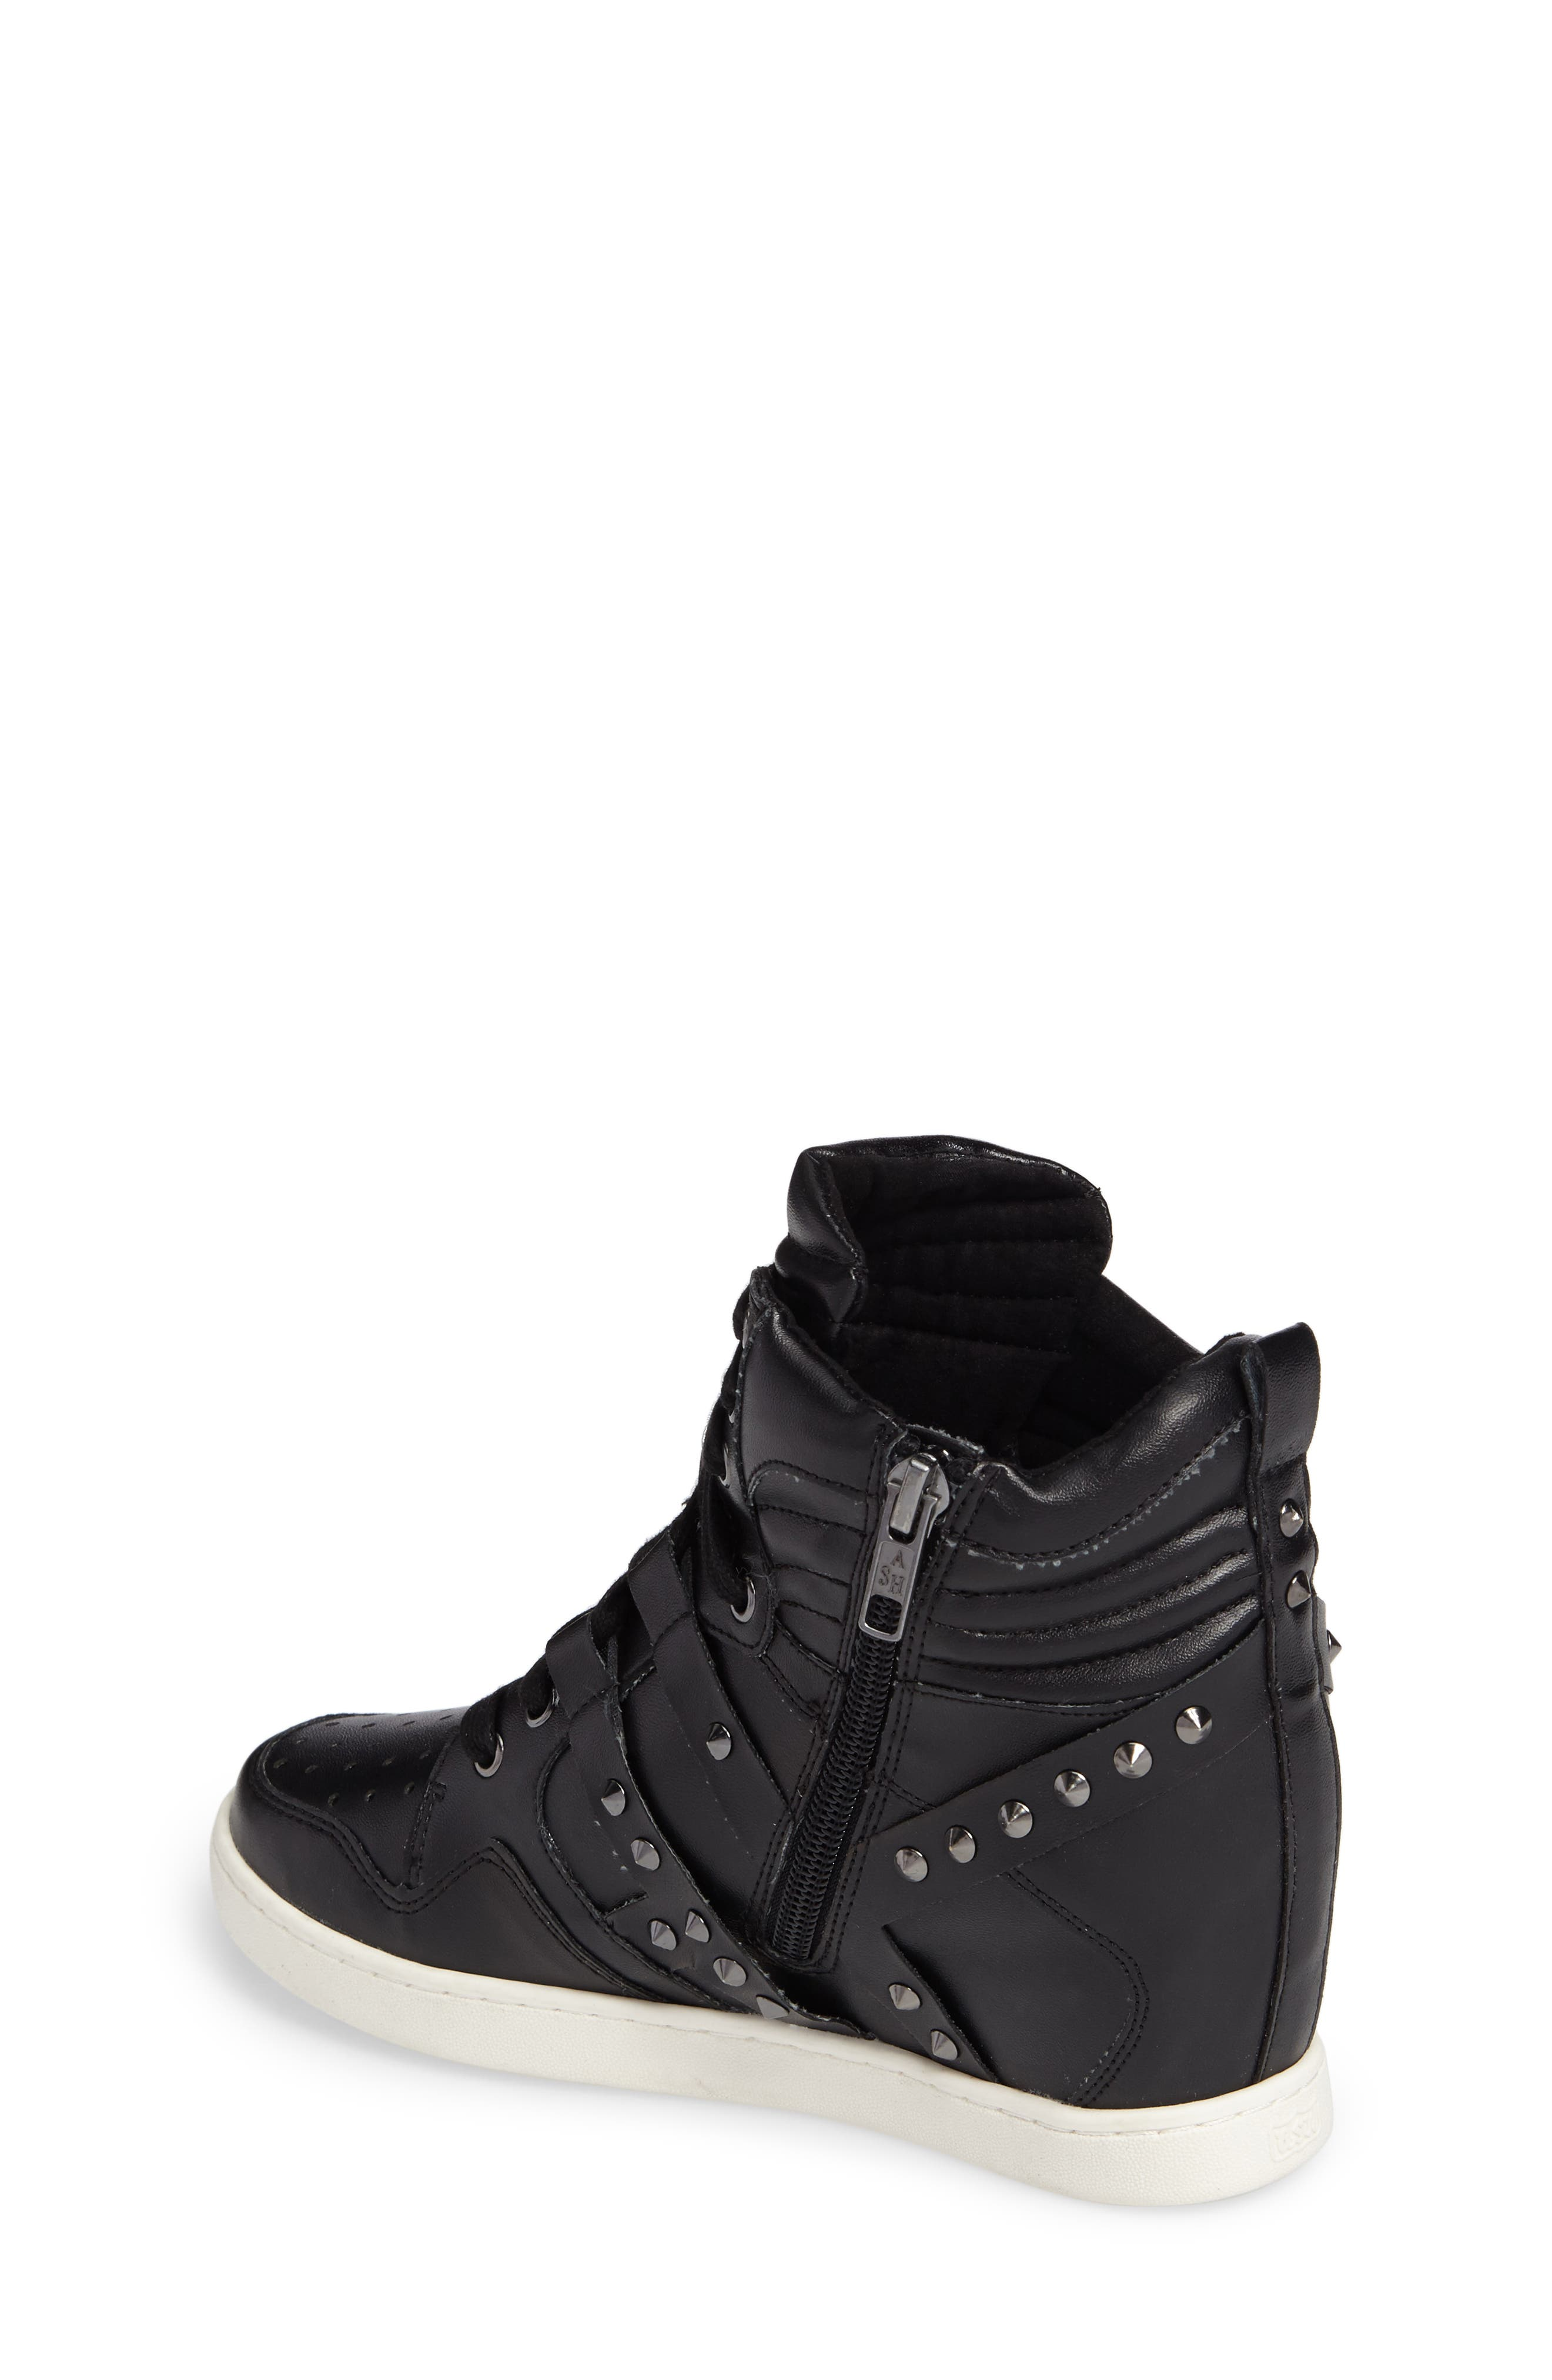 Boogie Chic Studded High Top Sneaker,                             Alternate thumbnail 2, color,                             Black Faux Leather